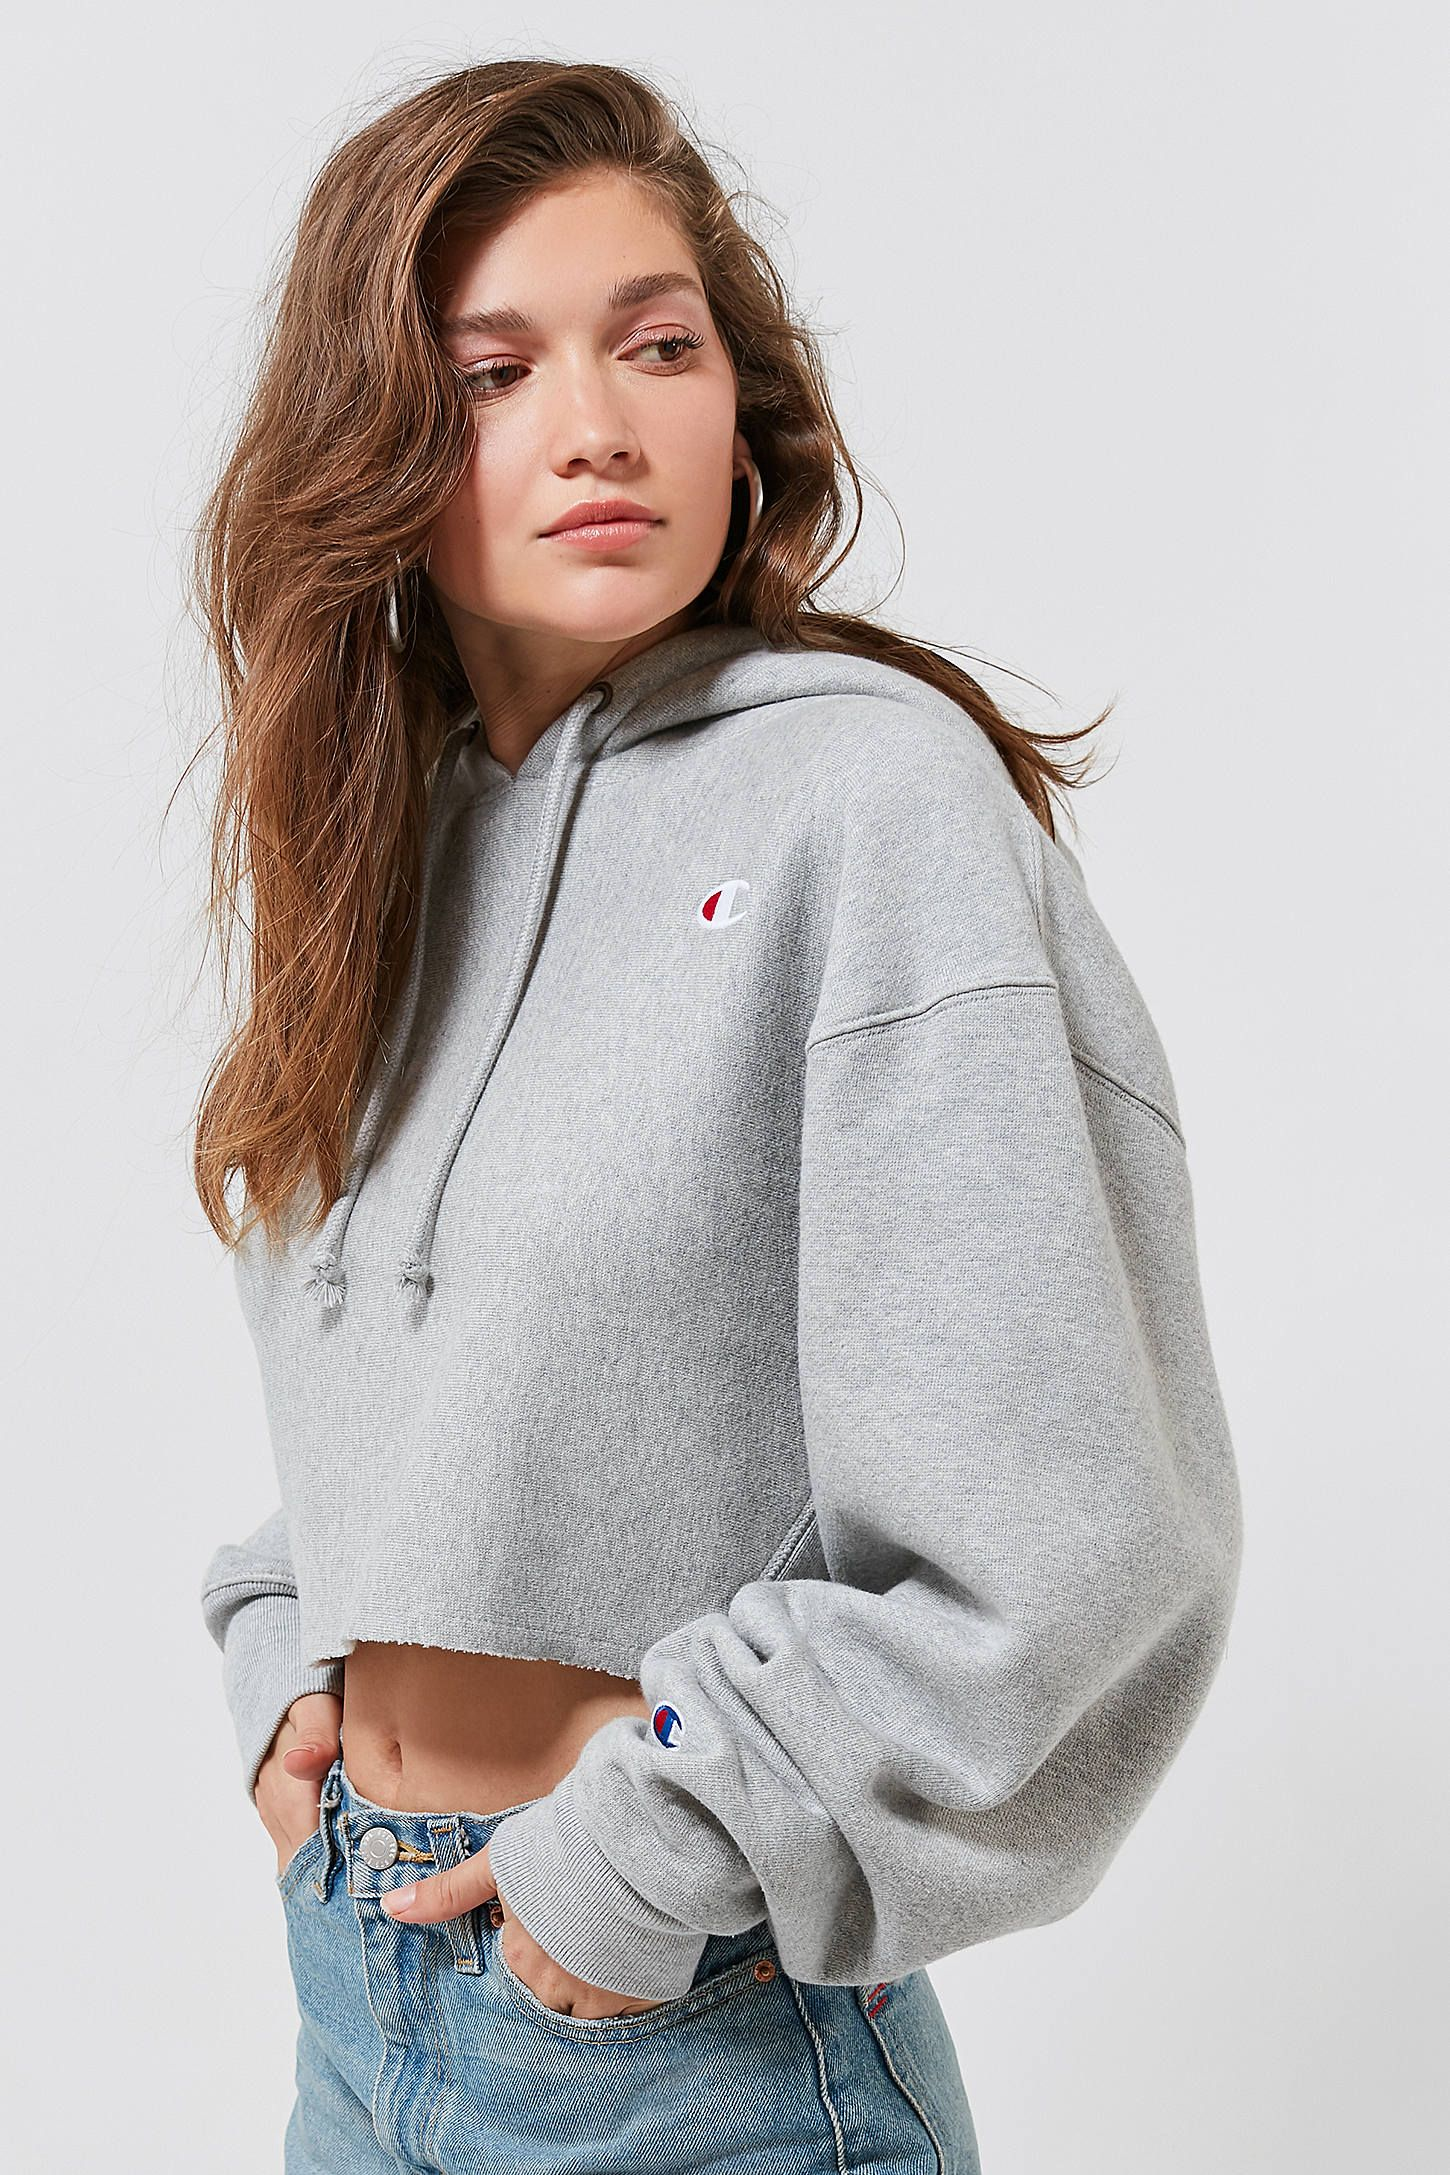 088d1a170dd5 Champion   UO Cropped Hoodie Sweatshirt in 2018